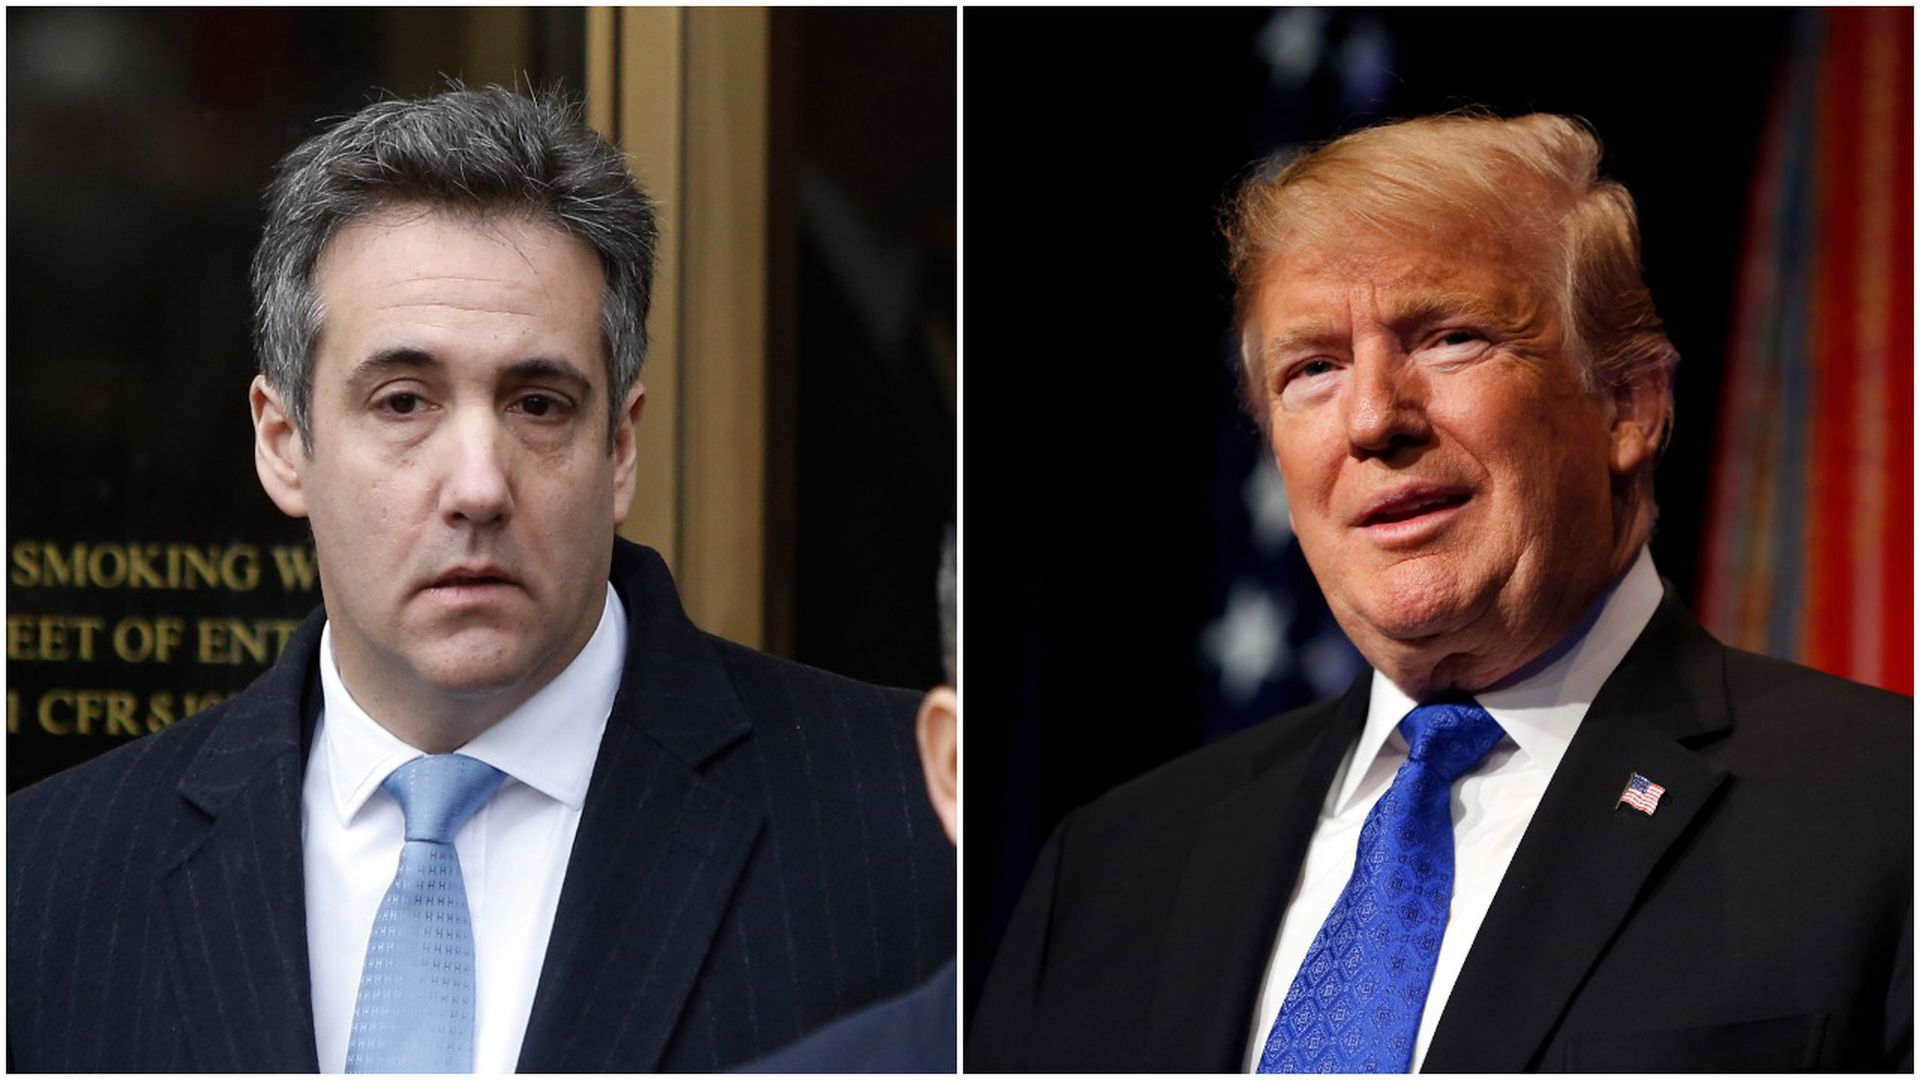 axios.com - Buzzfeed: Trump told Cohen to lie to Congress about Moscow tower